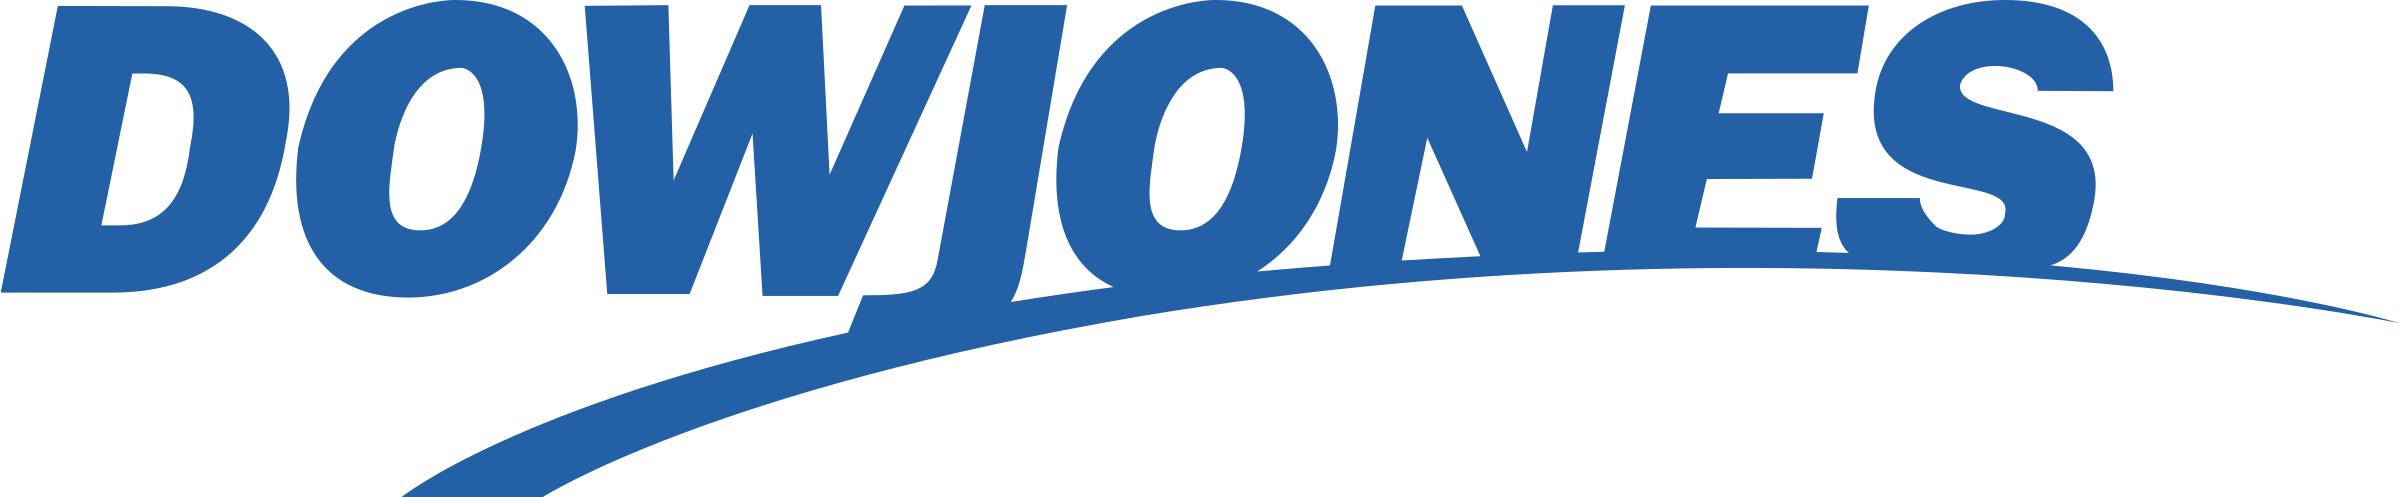 Dow Jones Logo PNG Transparent & SVG Vector.